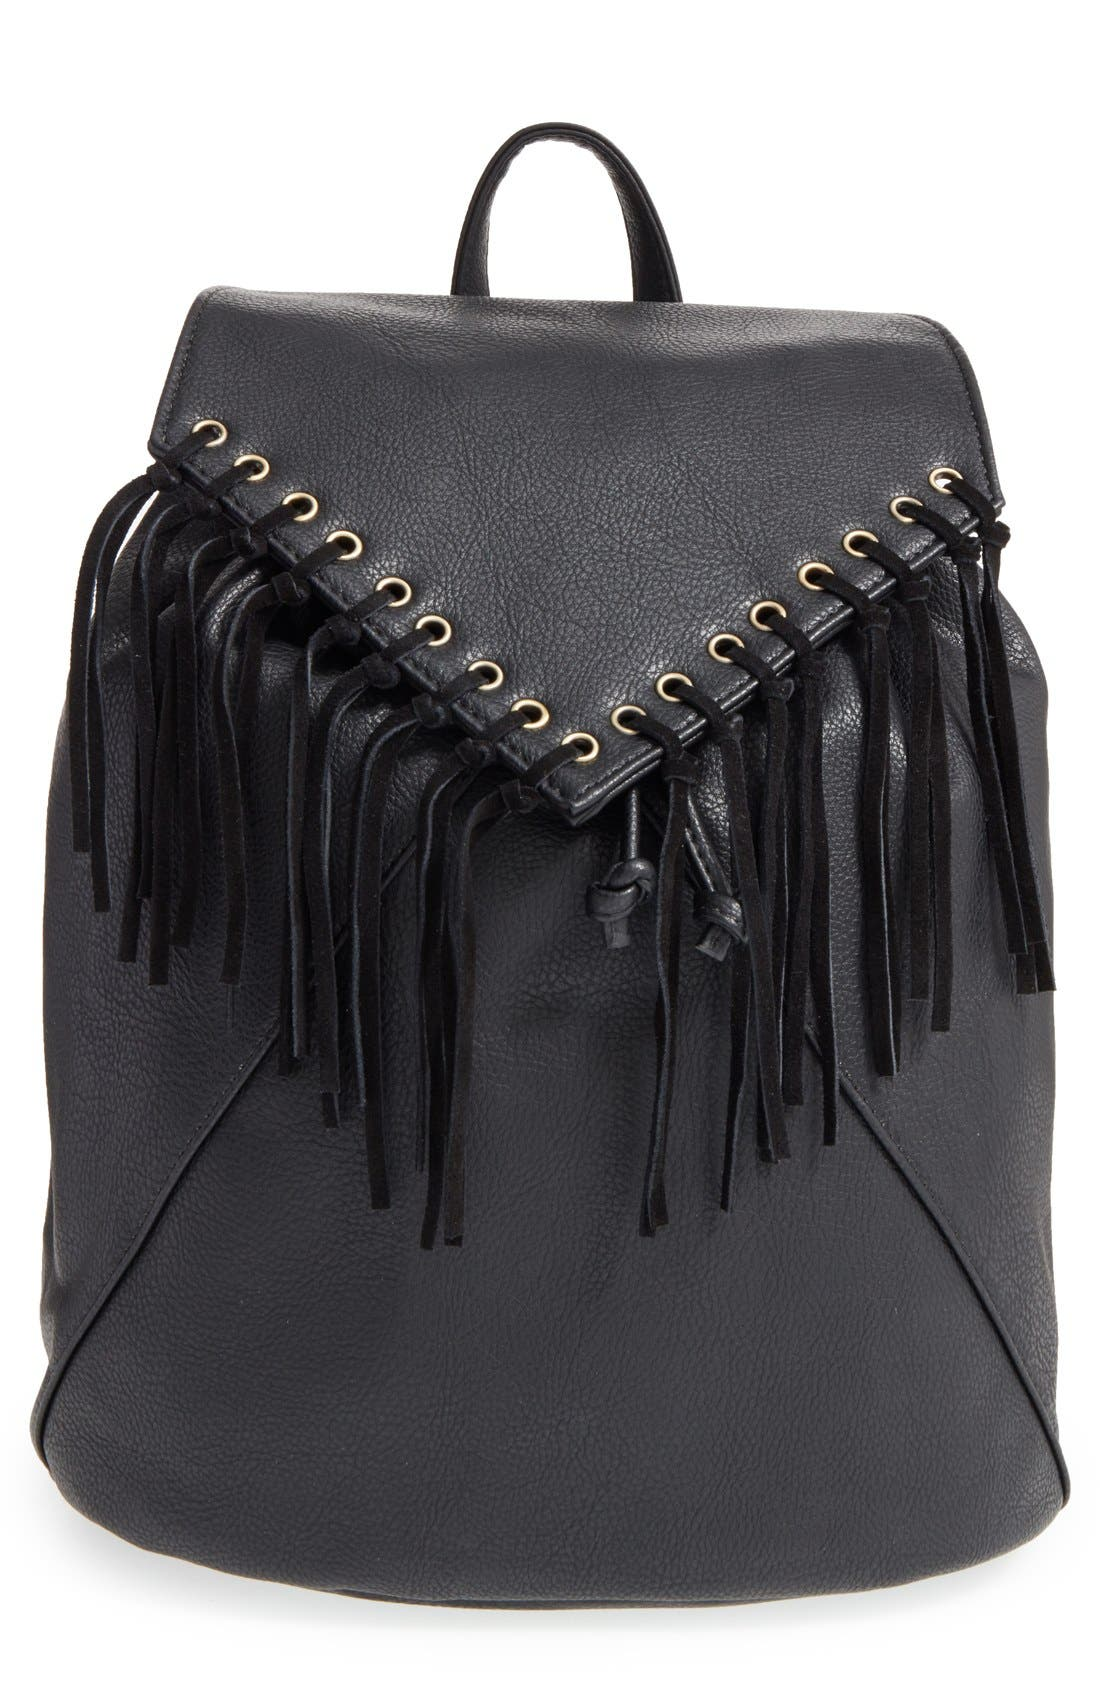 'Hartley' Faux Leather Backpack,                             Main thumbnail 1, color,                             001